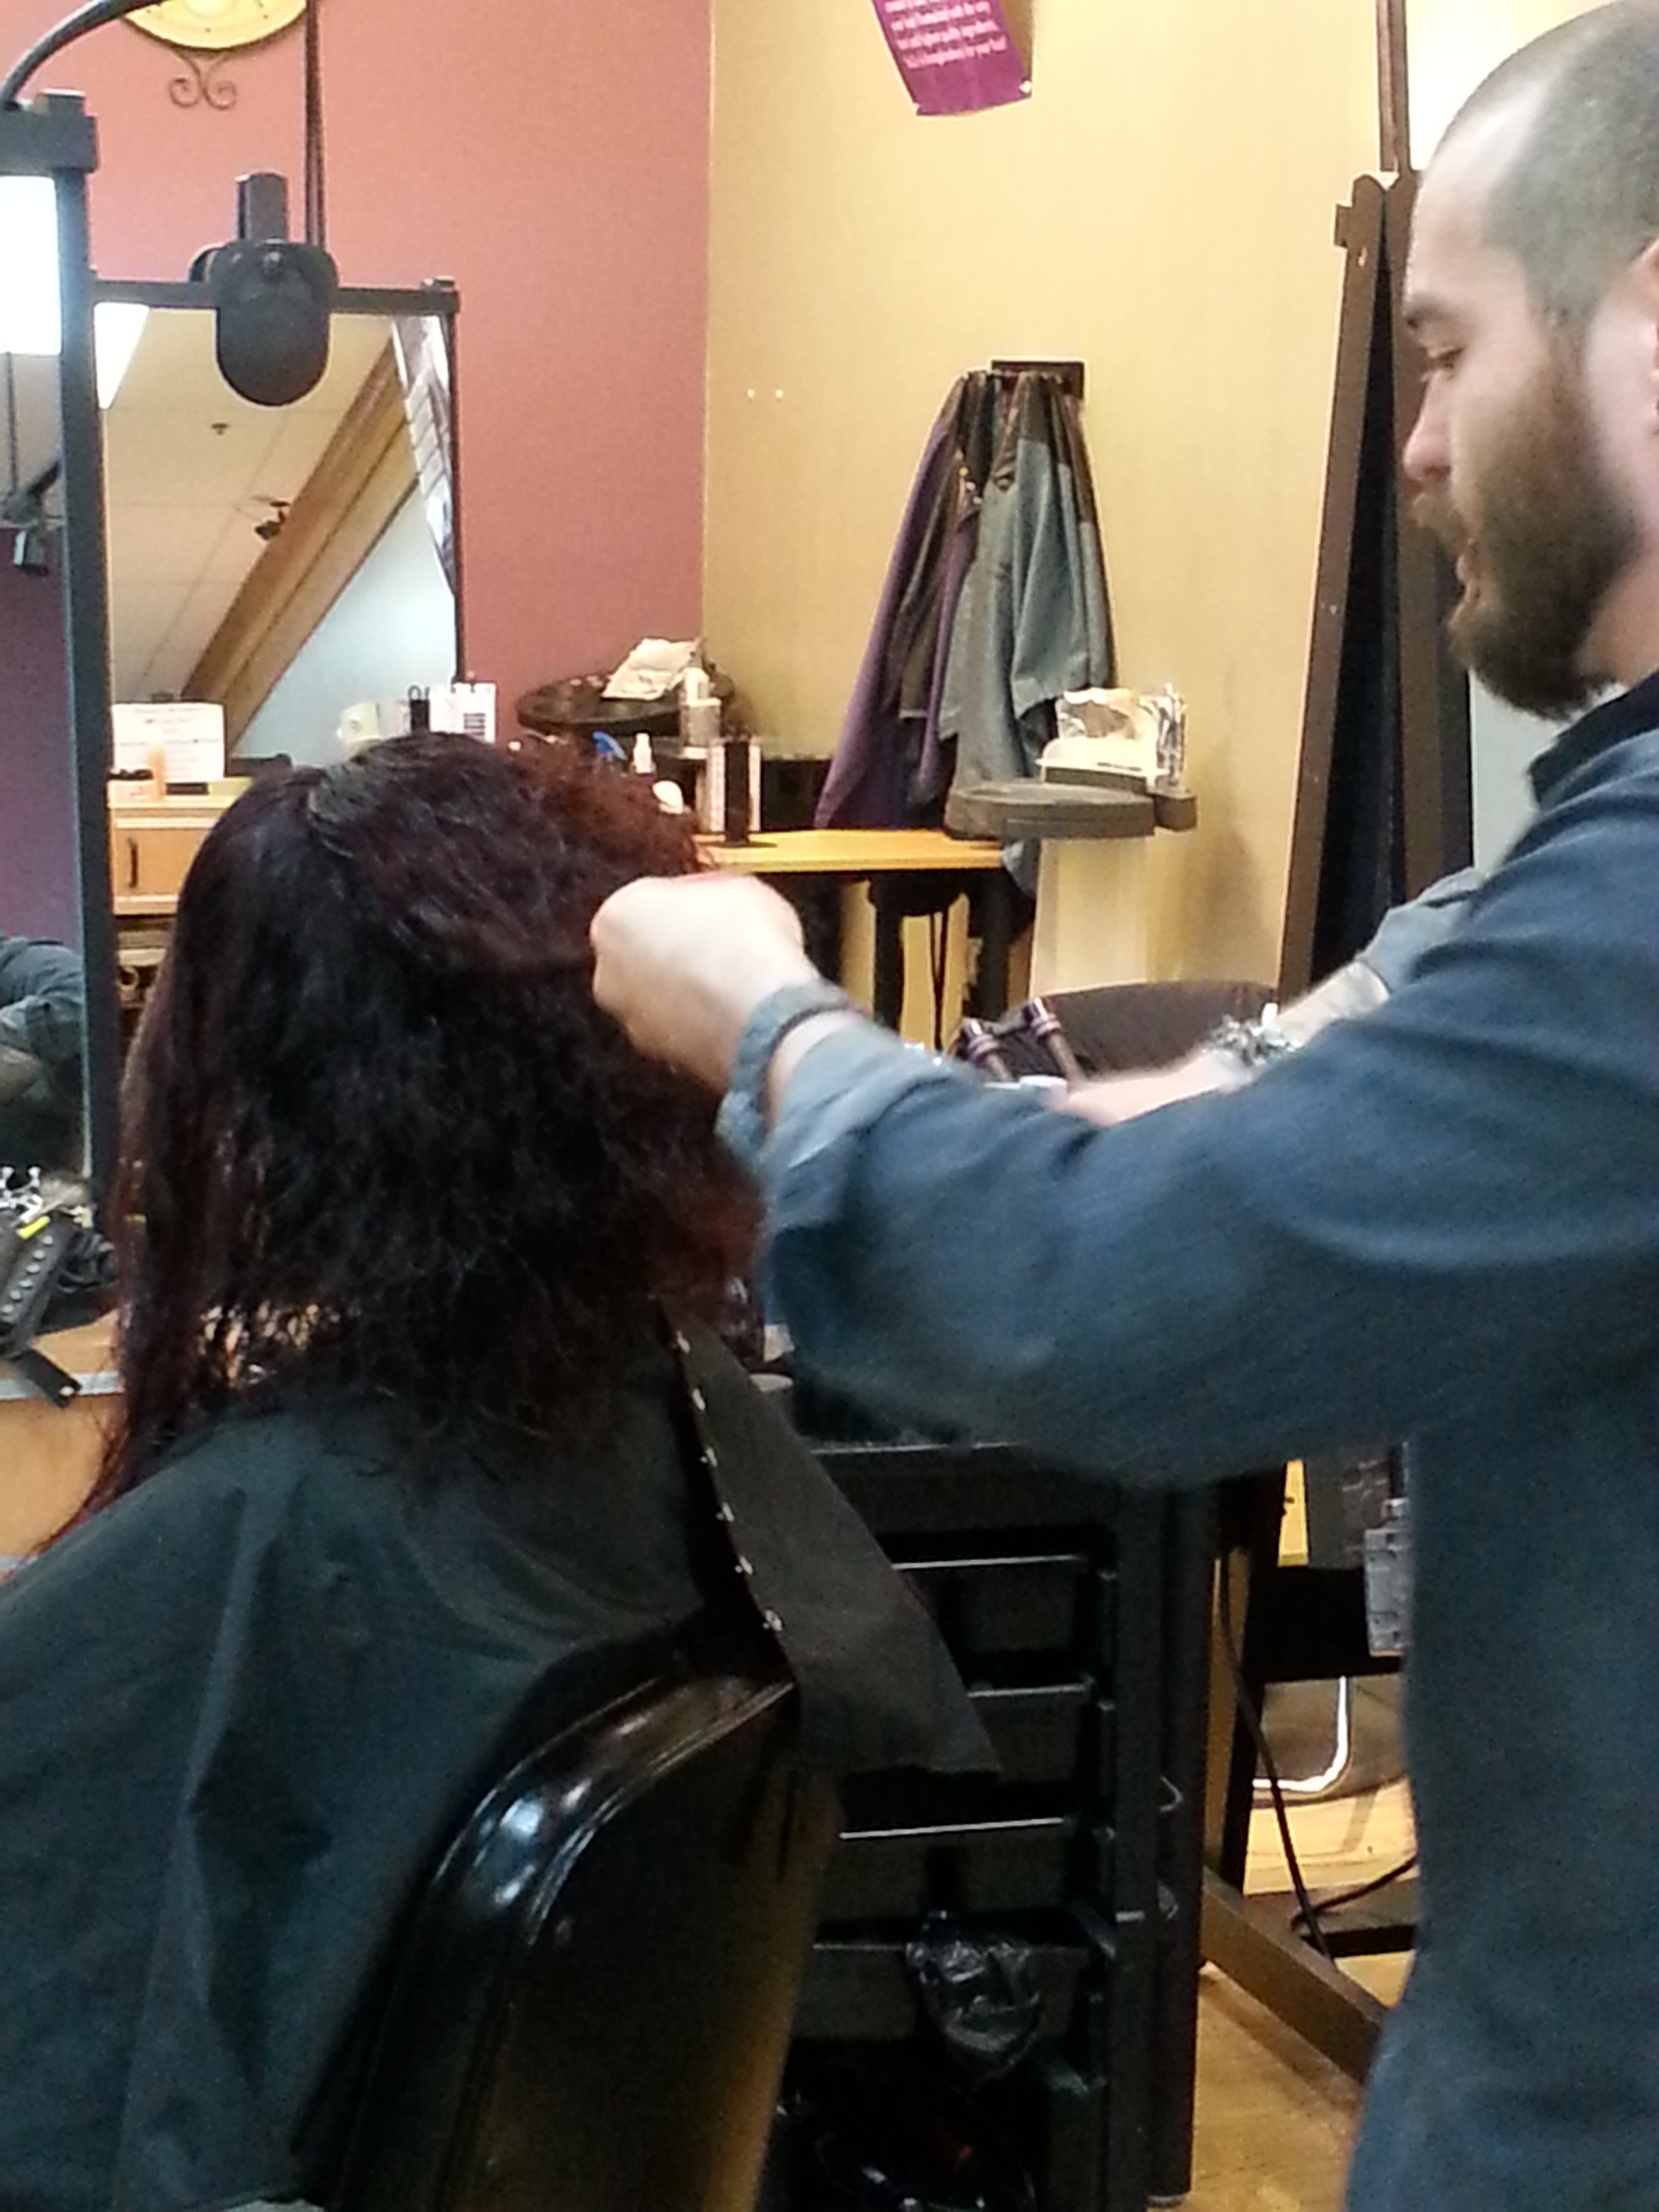 Uncategorized archives the best hair salon in cincinnati - Cincinnati hair salons ...